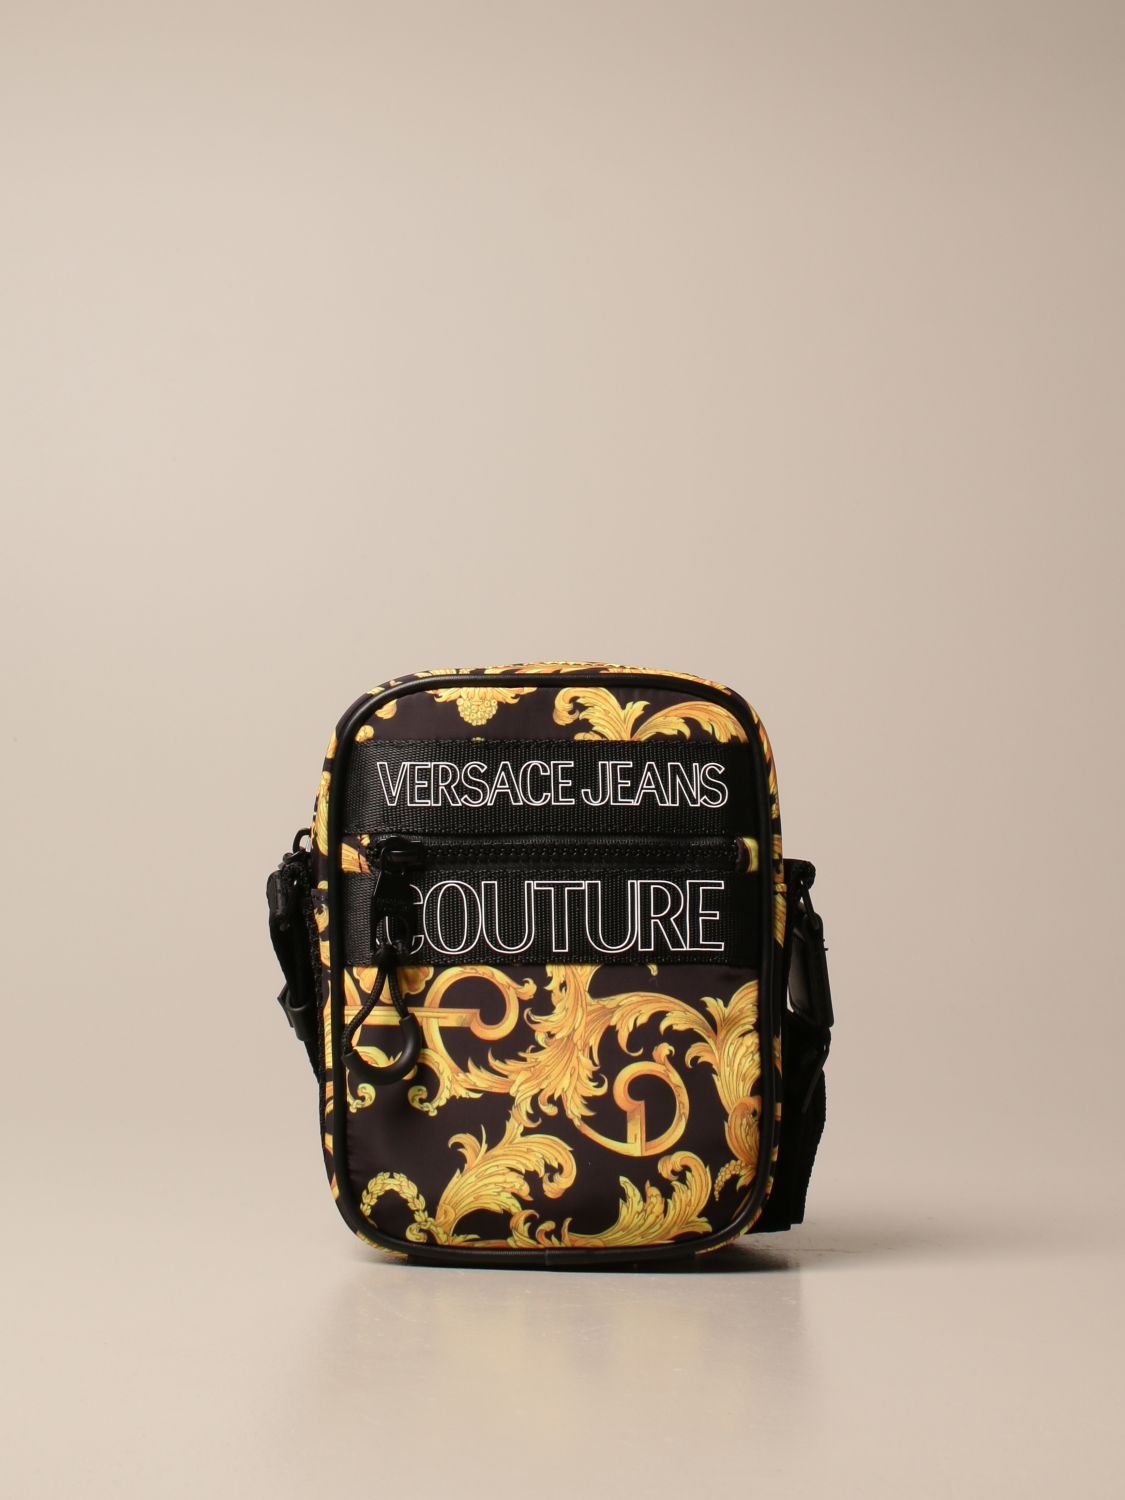 Versace Jeans Sacoche Couture